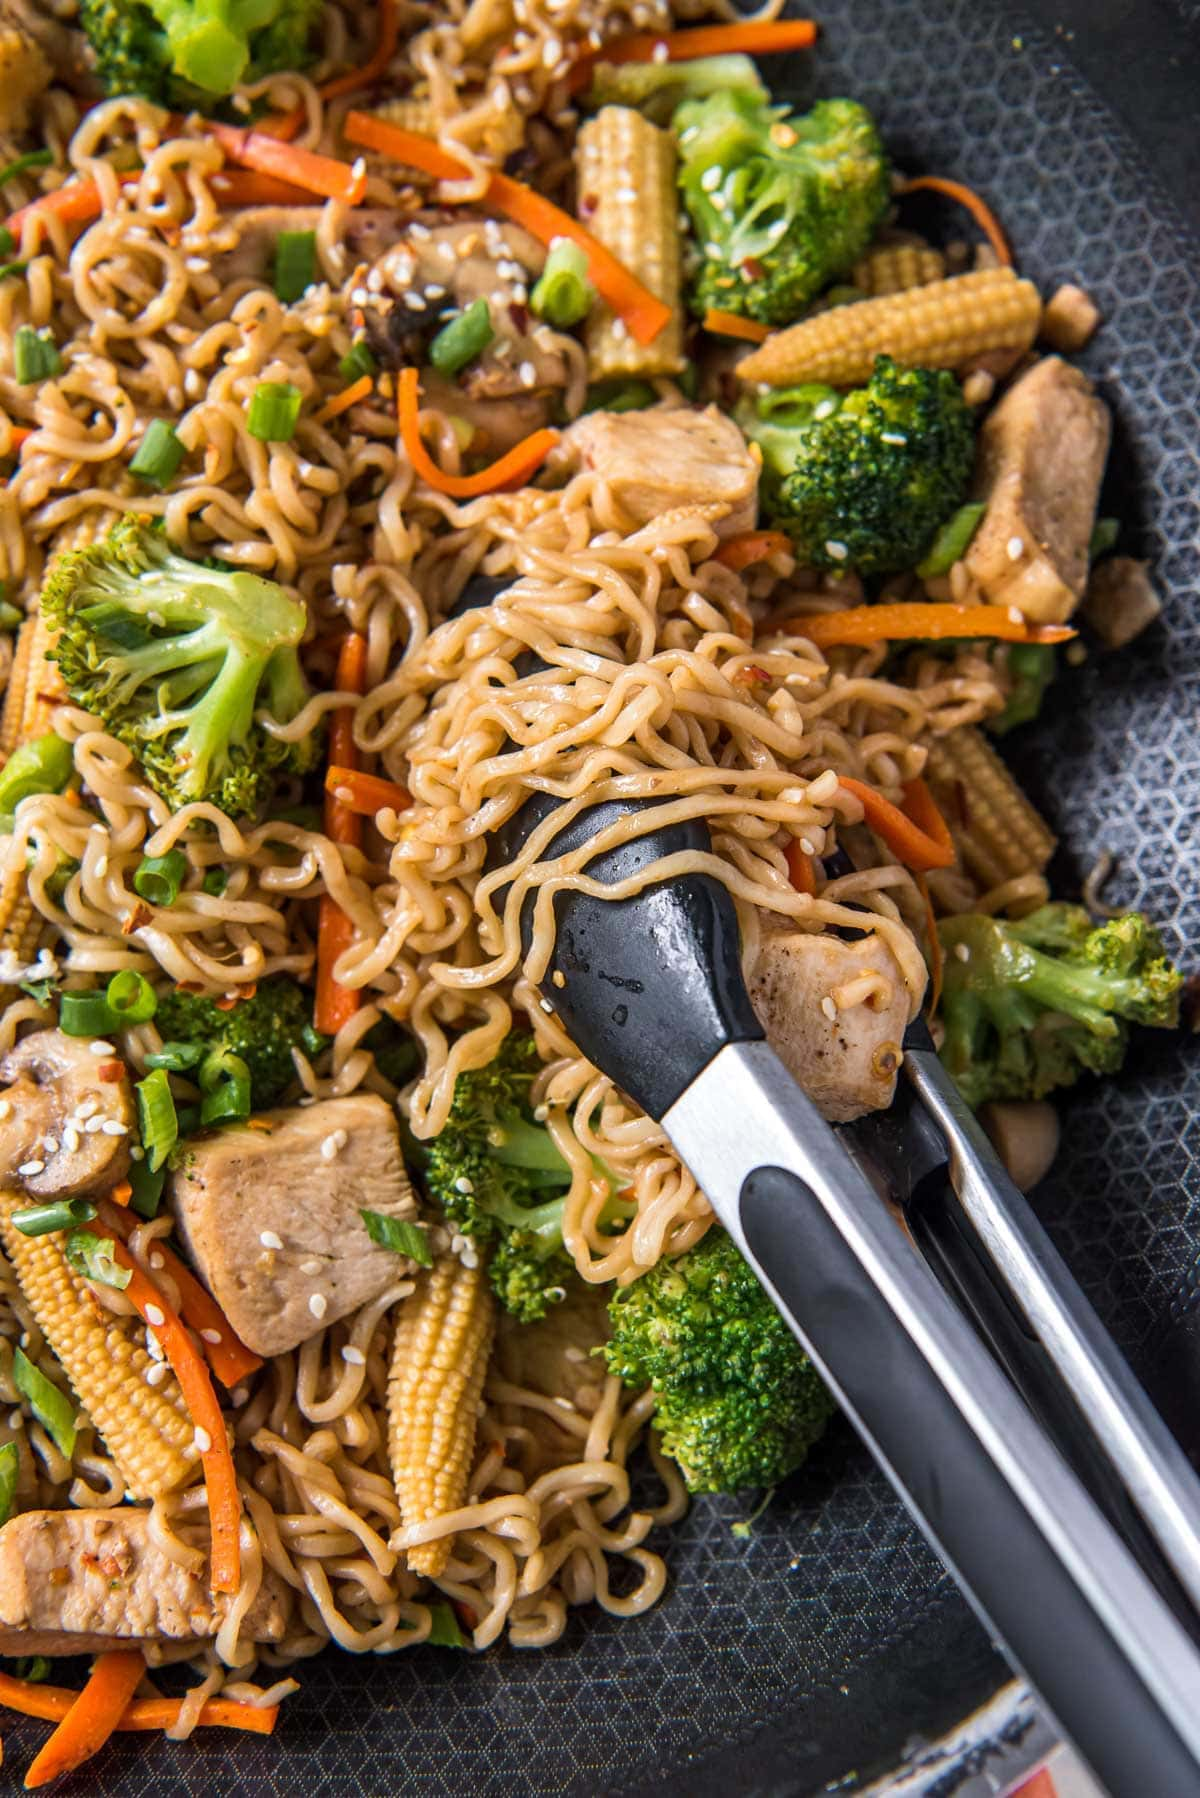 skillet with ramen noodles, stir fry with chicken and vegetables, black and silver metal tongs